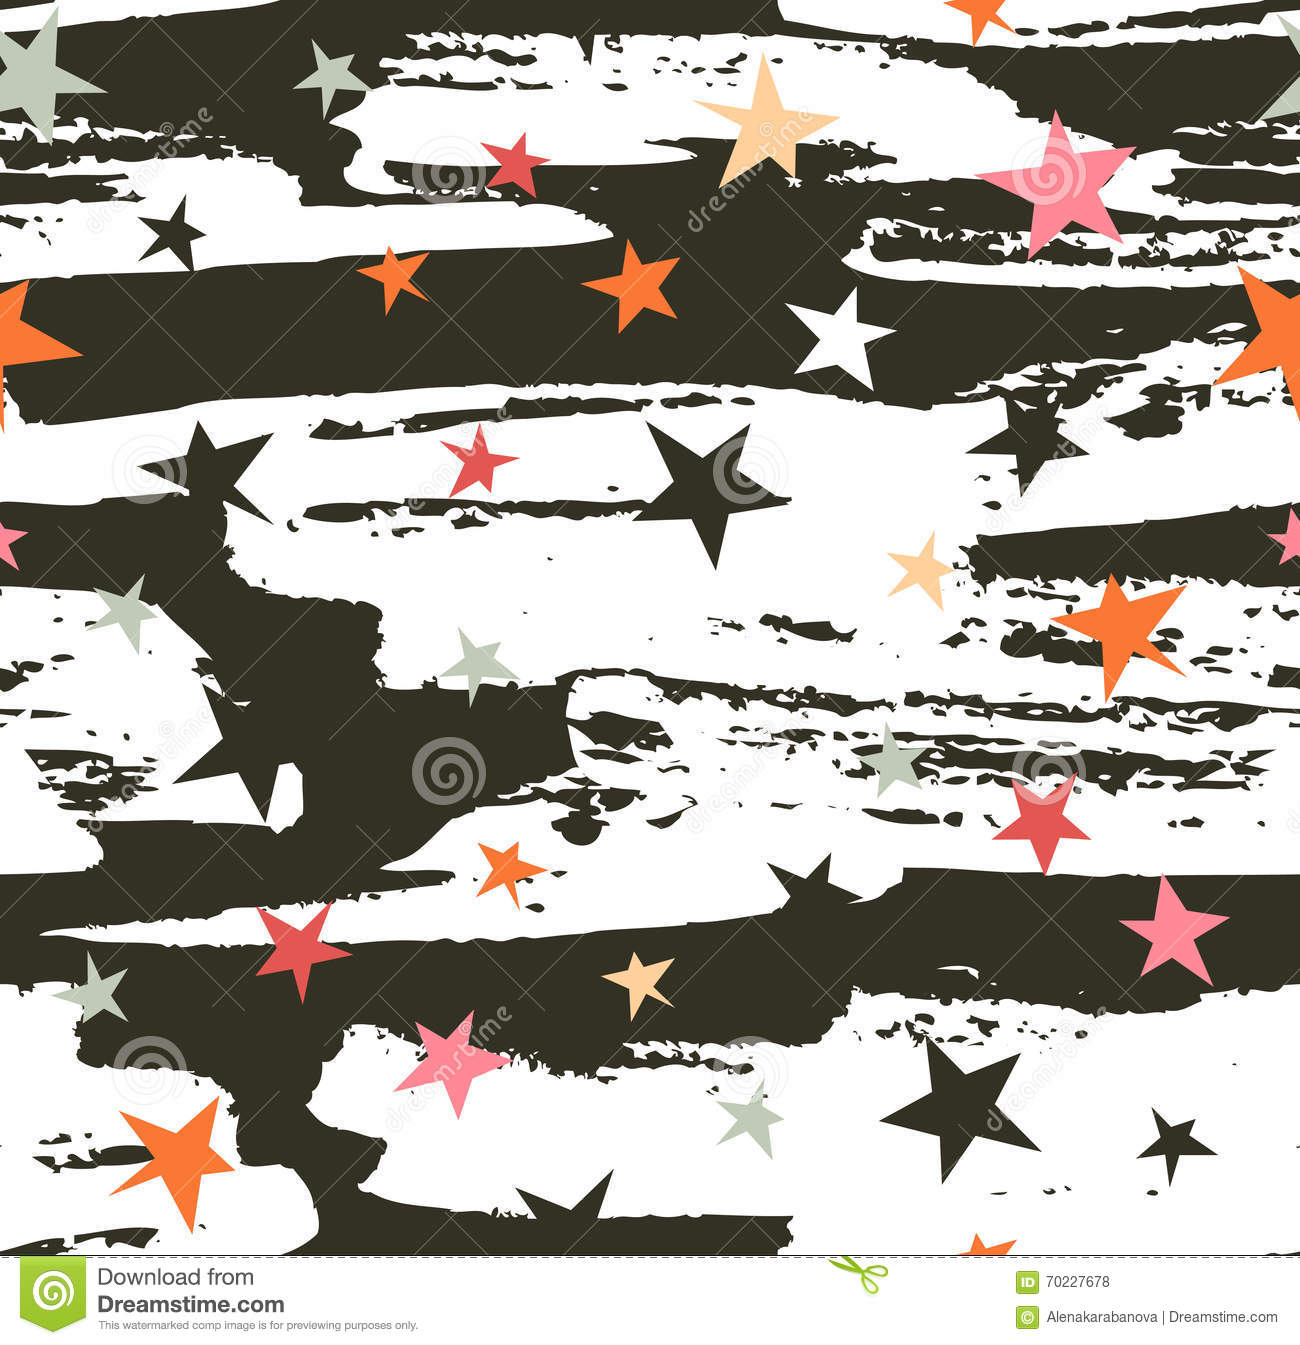 Hand drawn seamless pattern. Vector hipster background stripe design with stars on the night sky.